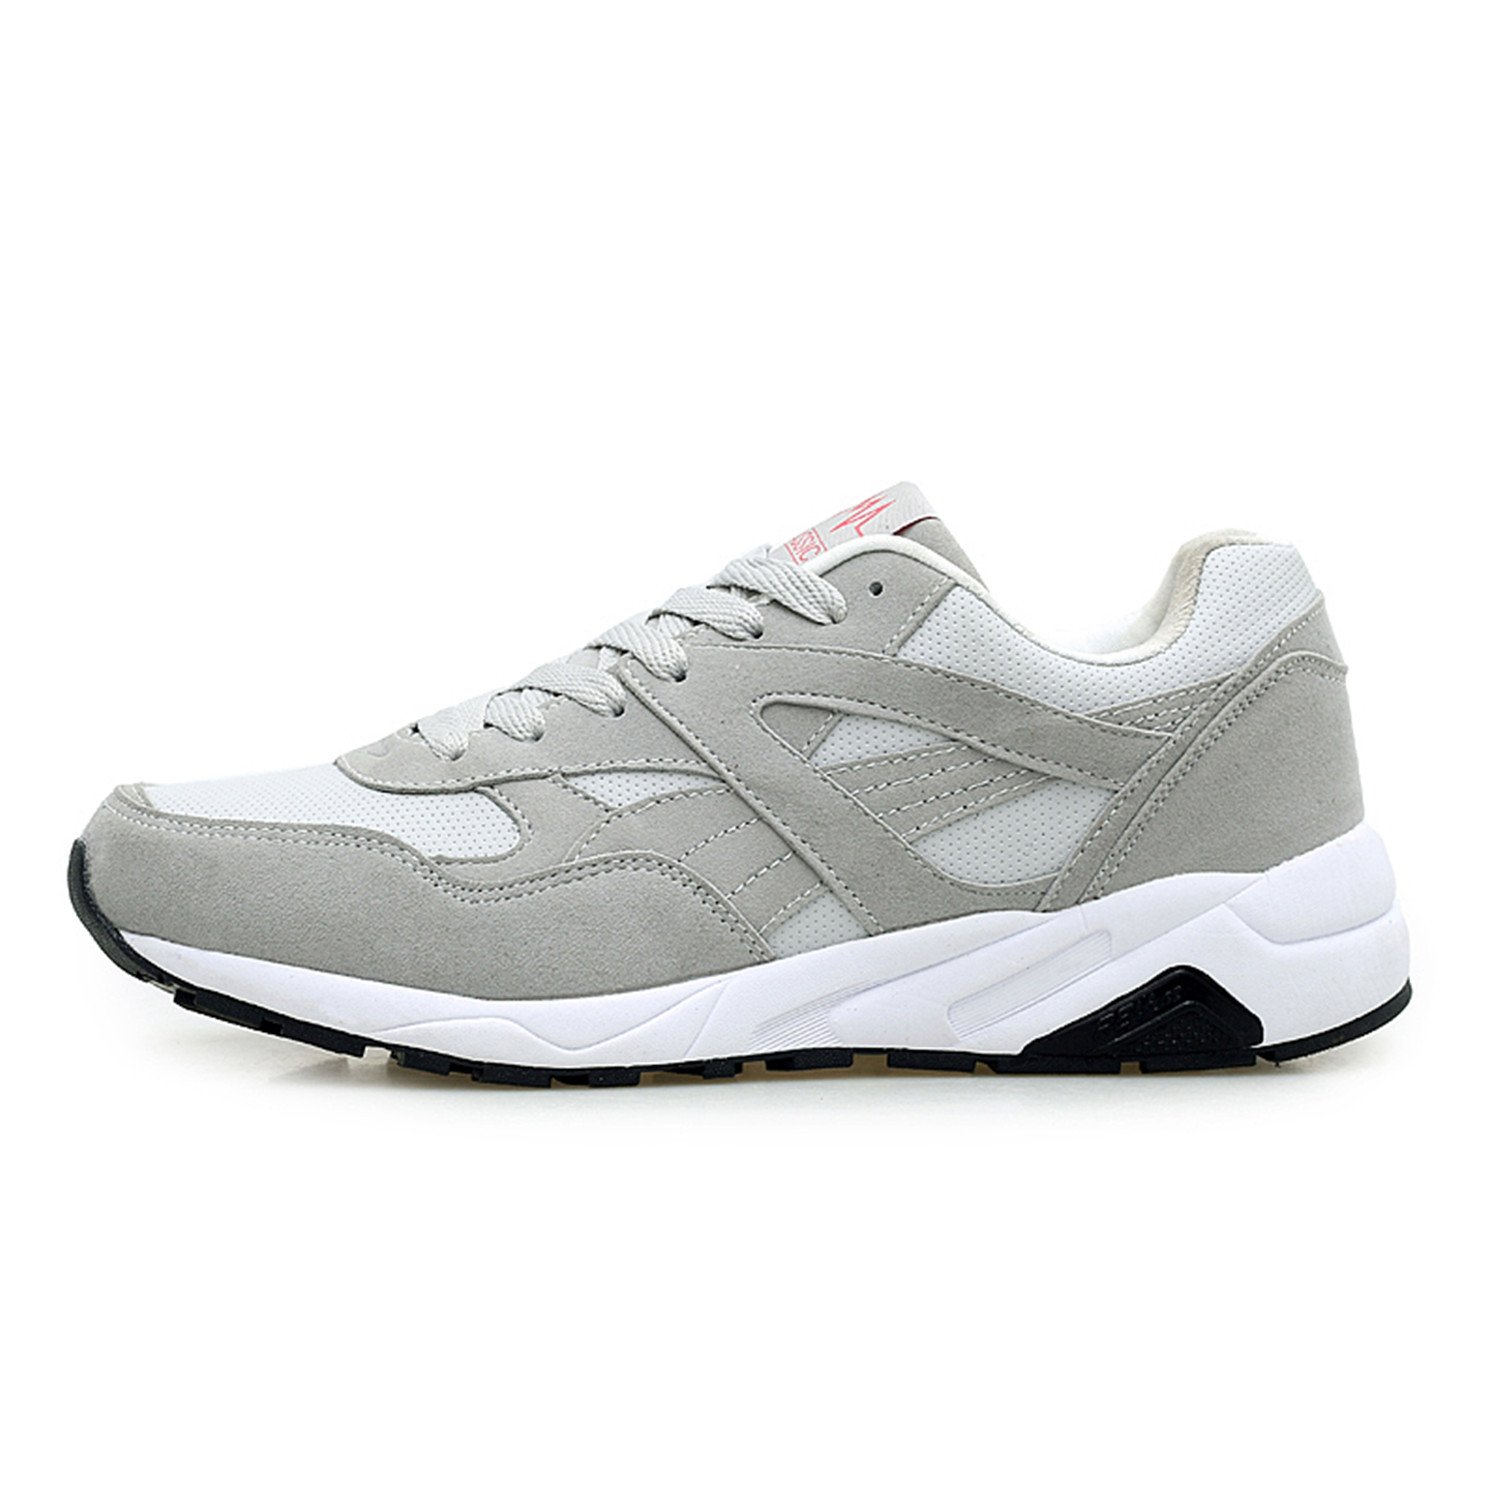 Amazon.com   Soto6ro Casual Mens Shoes Autumn Breathable Fashion Luxury Men Leather Shoes Flat Hot Sale   Fashion Sneakers